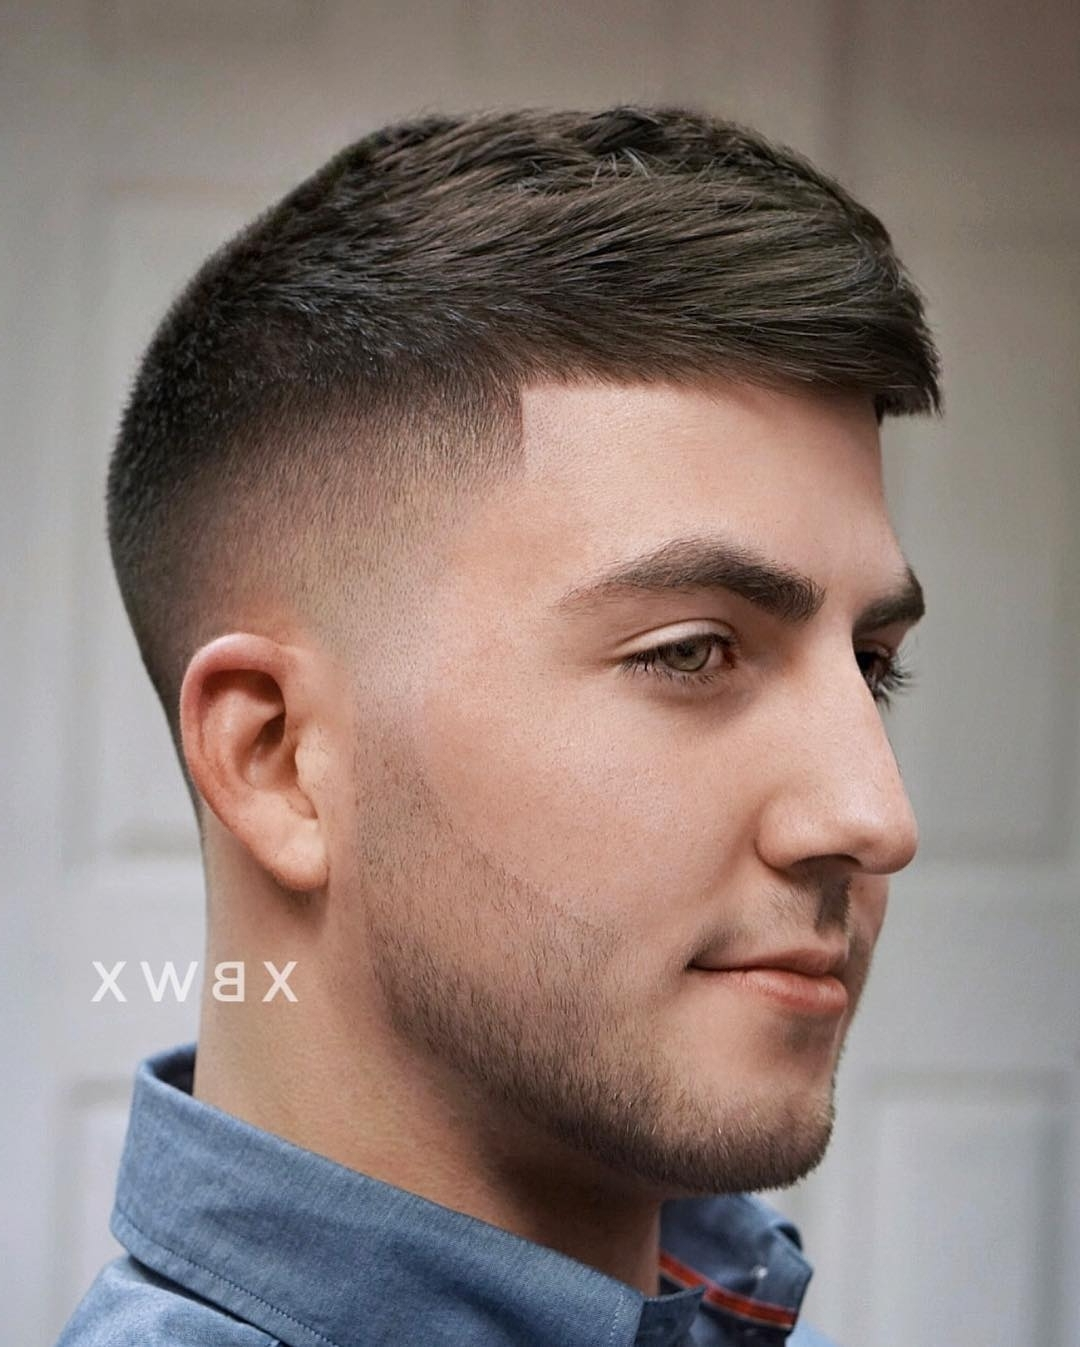 175 Best Short Haircuts Men: Most Popular Styles For 2021 Mens Medium Short Hairstyles 2019